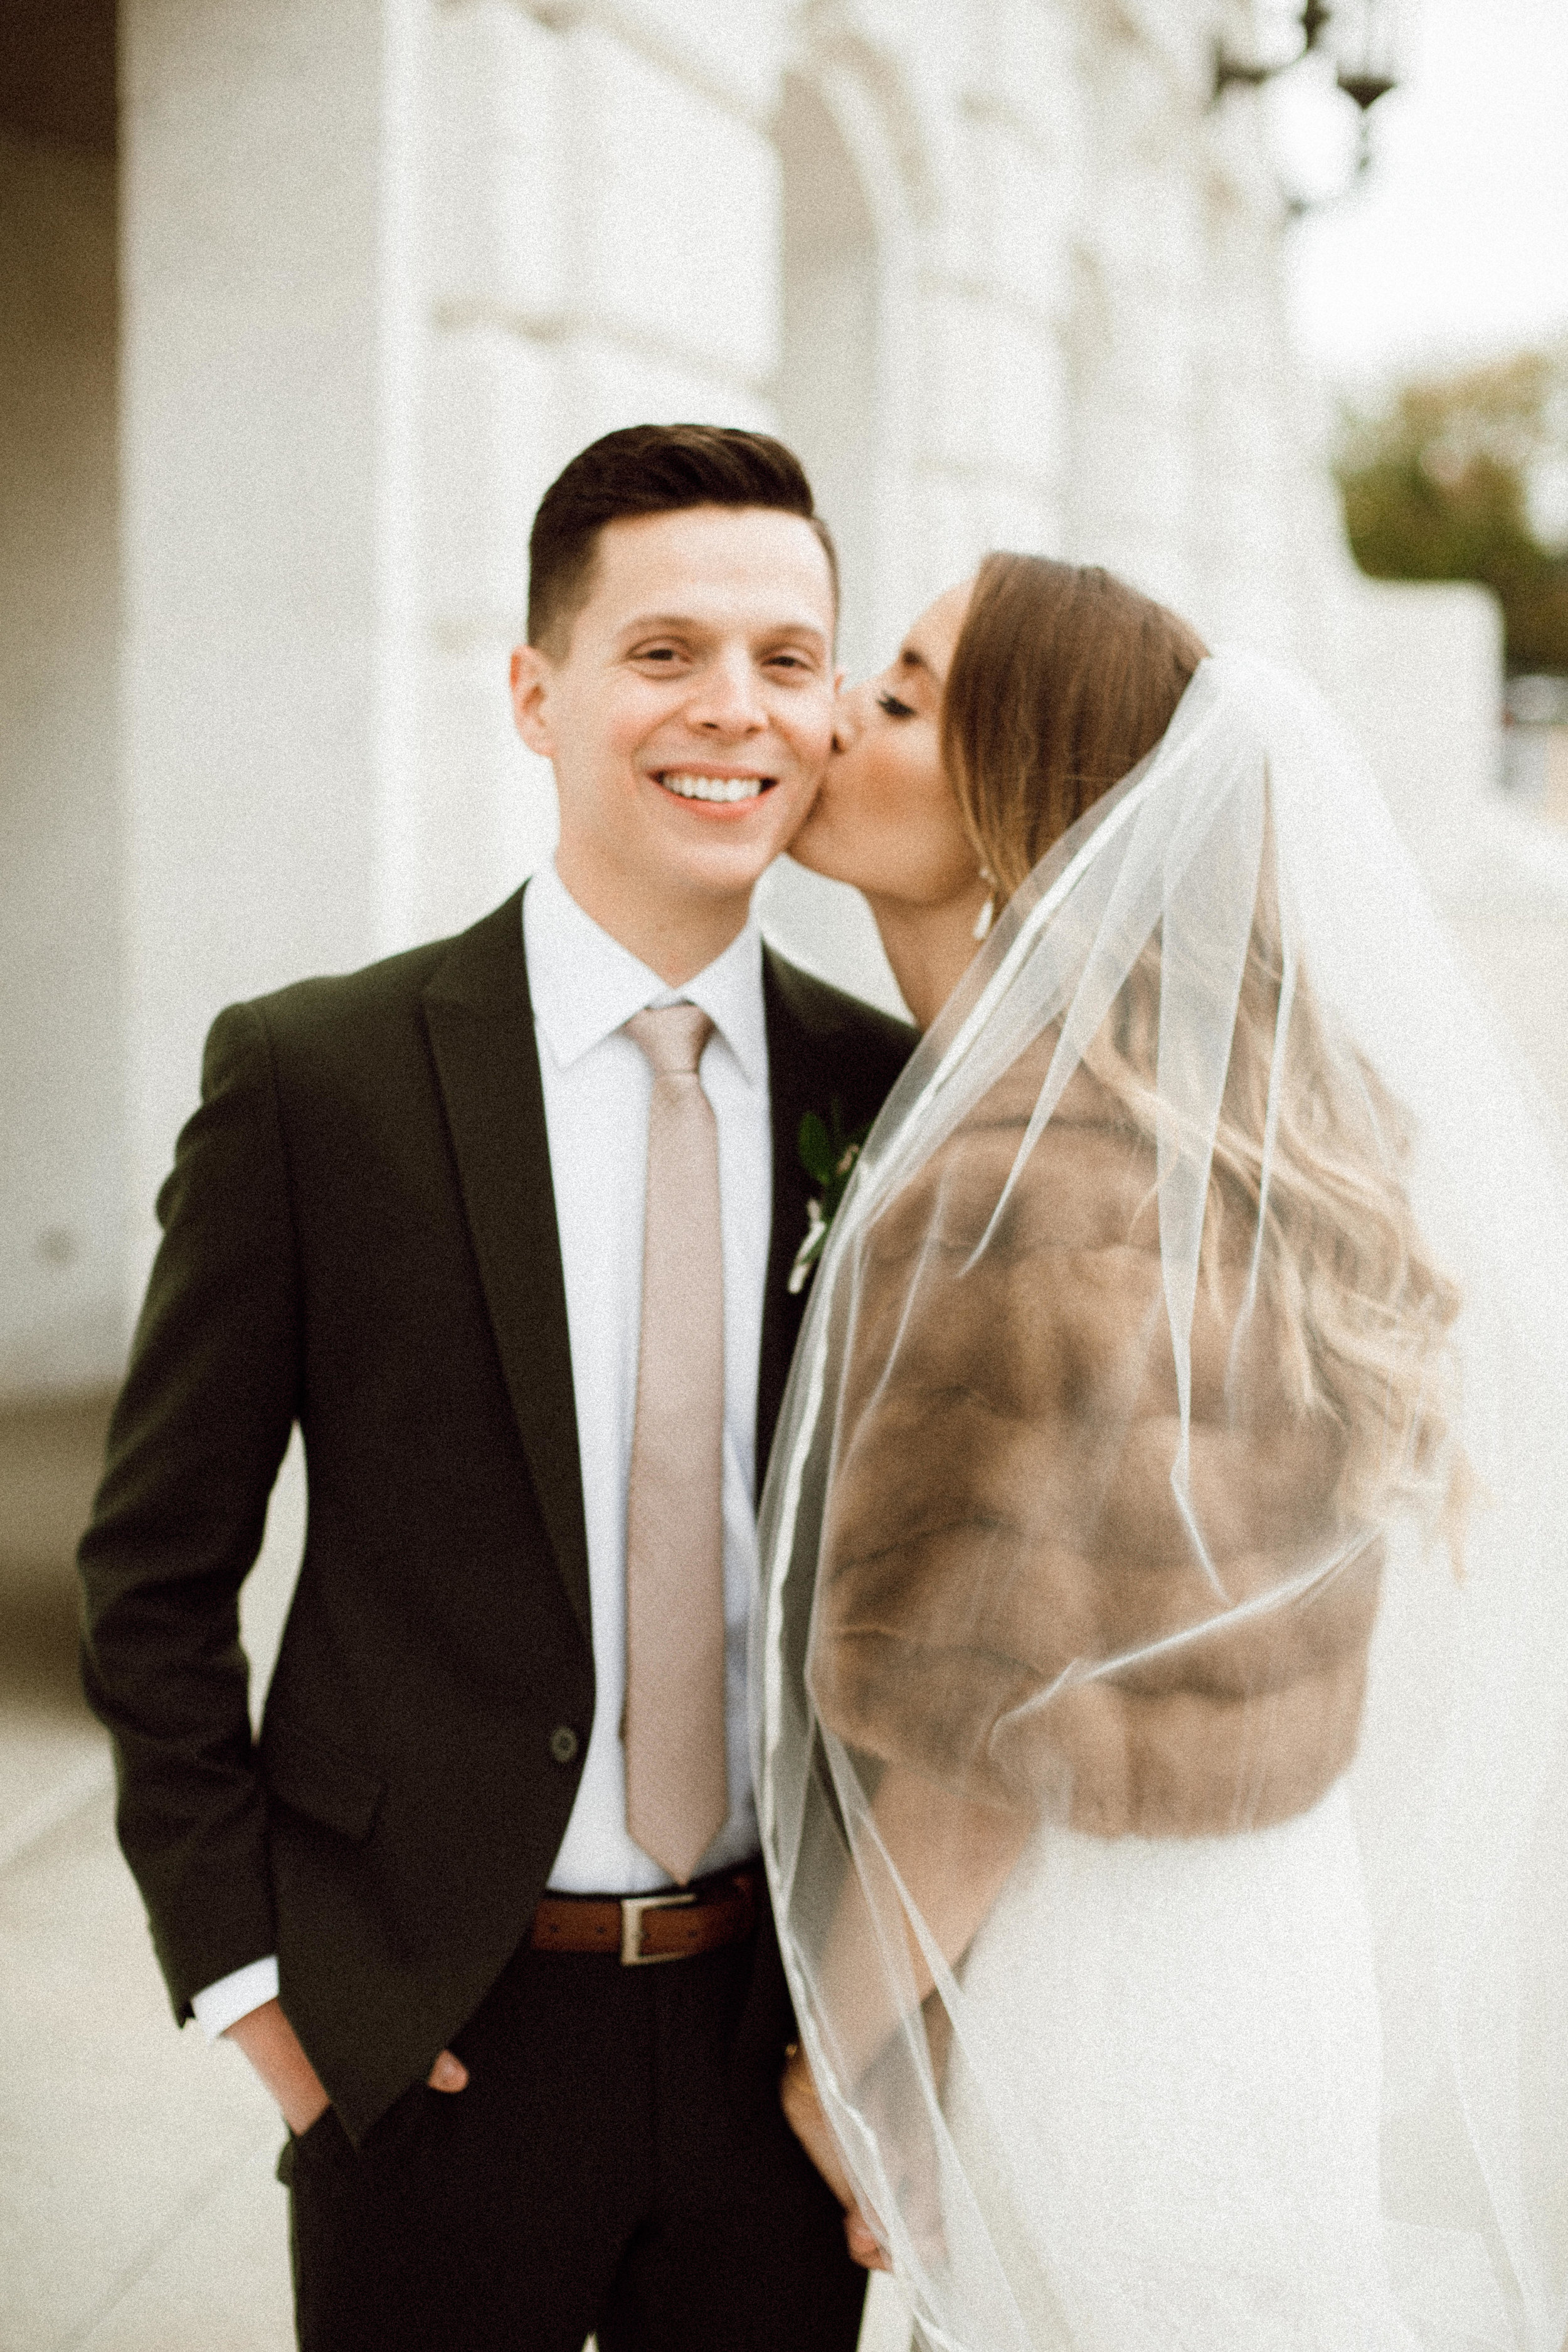 Katie_Vonasek_Photography_Ford_Piquette_Plant_Wedding_Detroit31.JPG